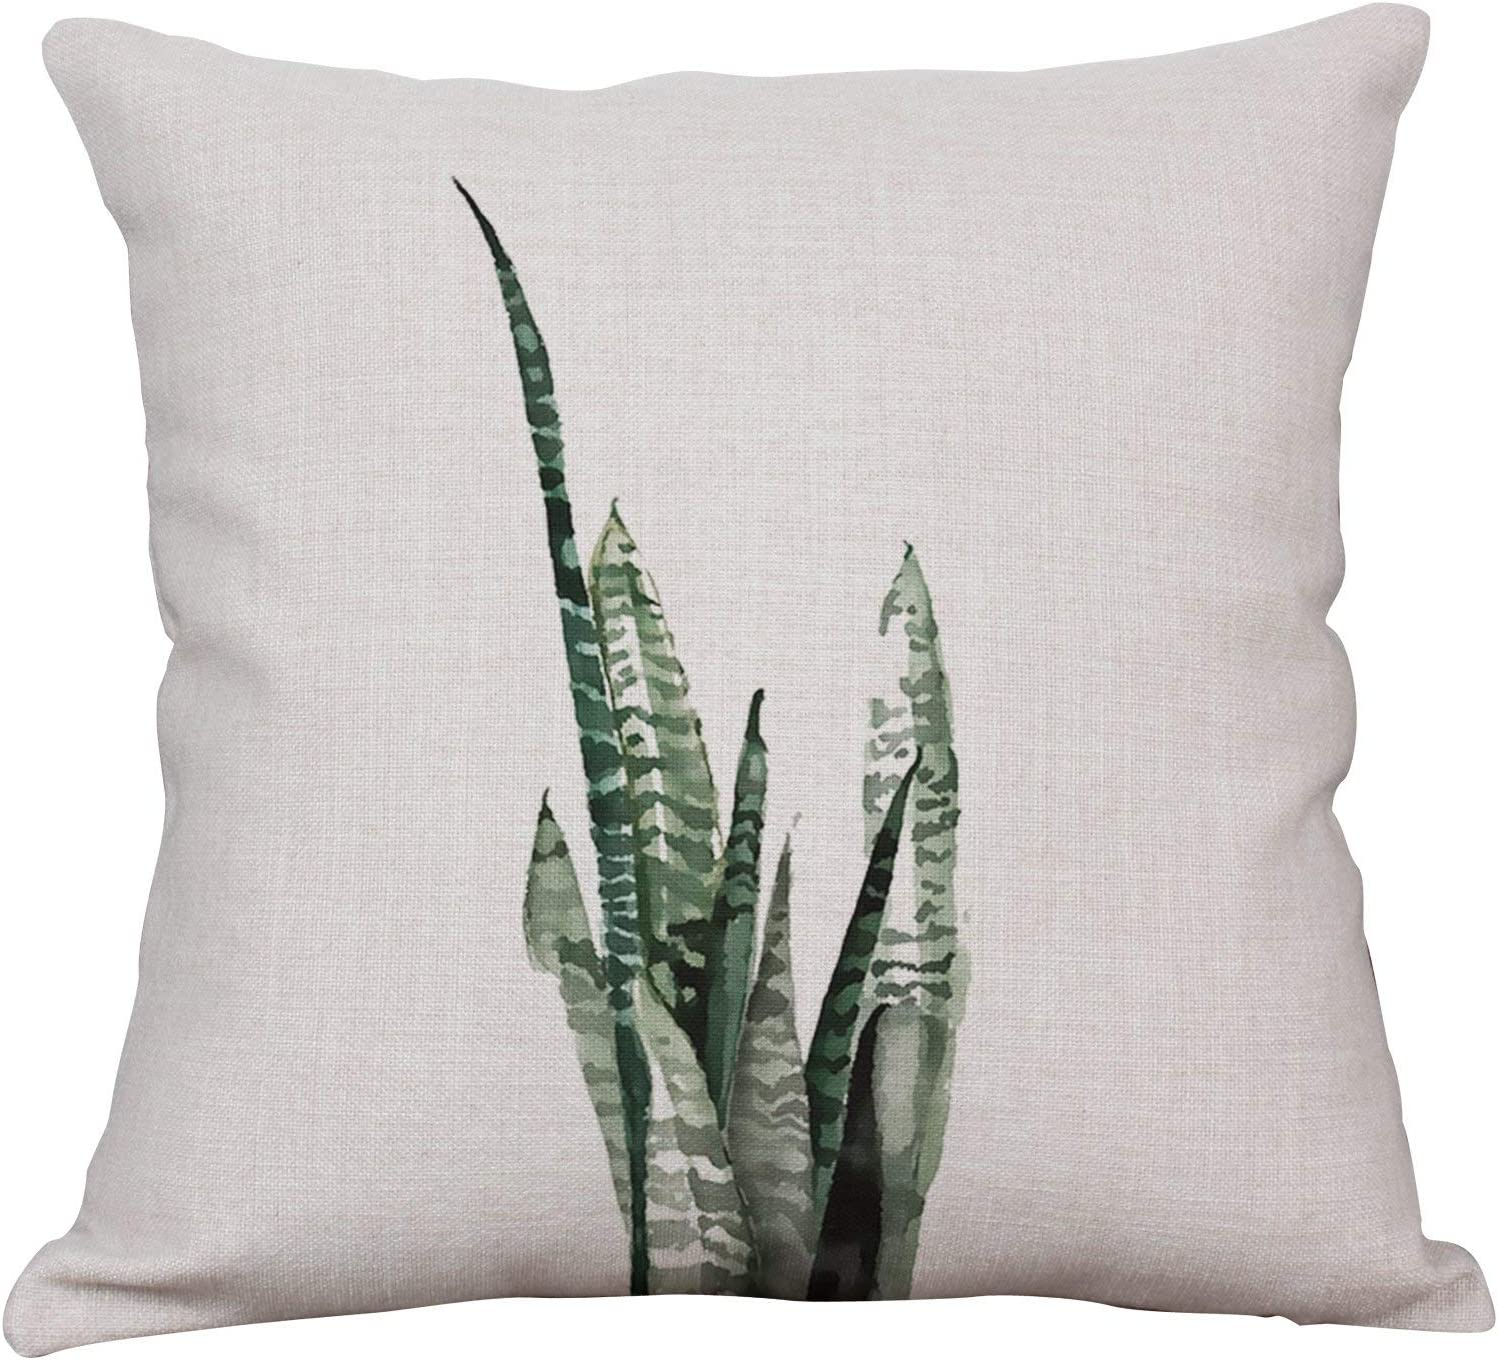 Amazon Com Yeeju Green Fern Leaf Throw Pillow Covers Decorative Cushion Covers Square Cotton Linen Outdoor Couch Sofa Home Pillow Covers 16x16 Inch Home Kitchen